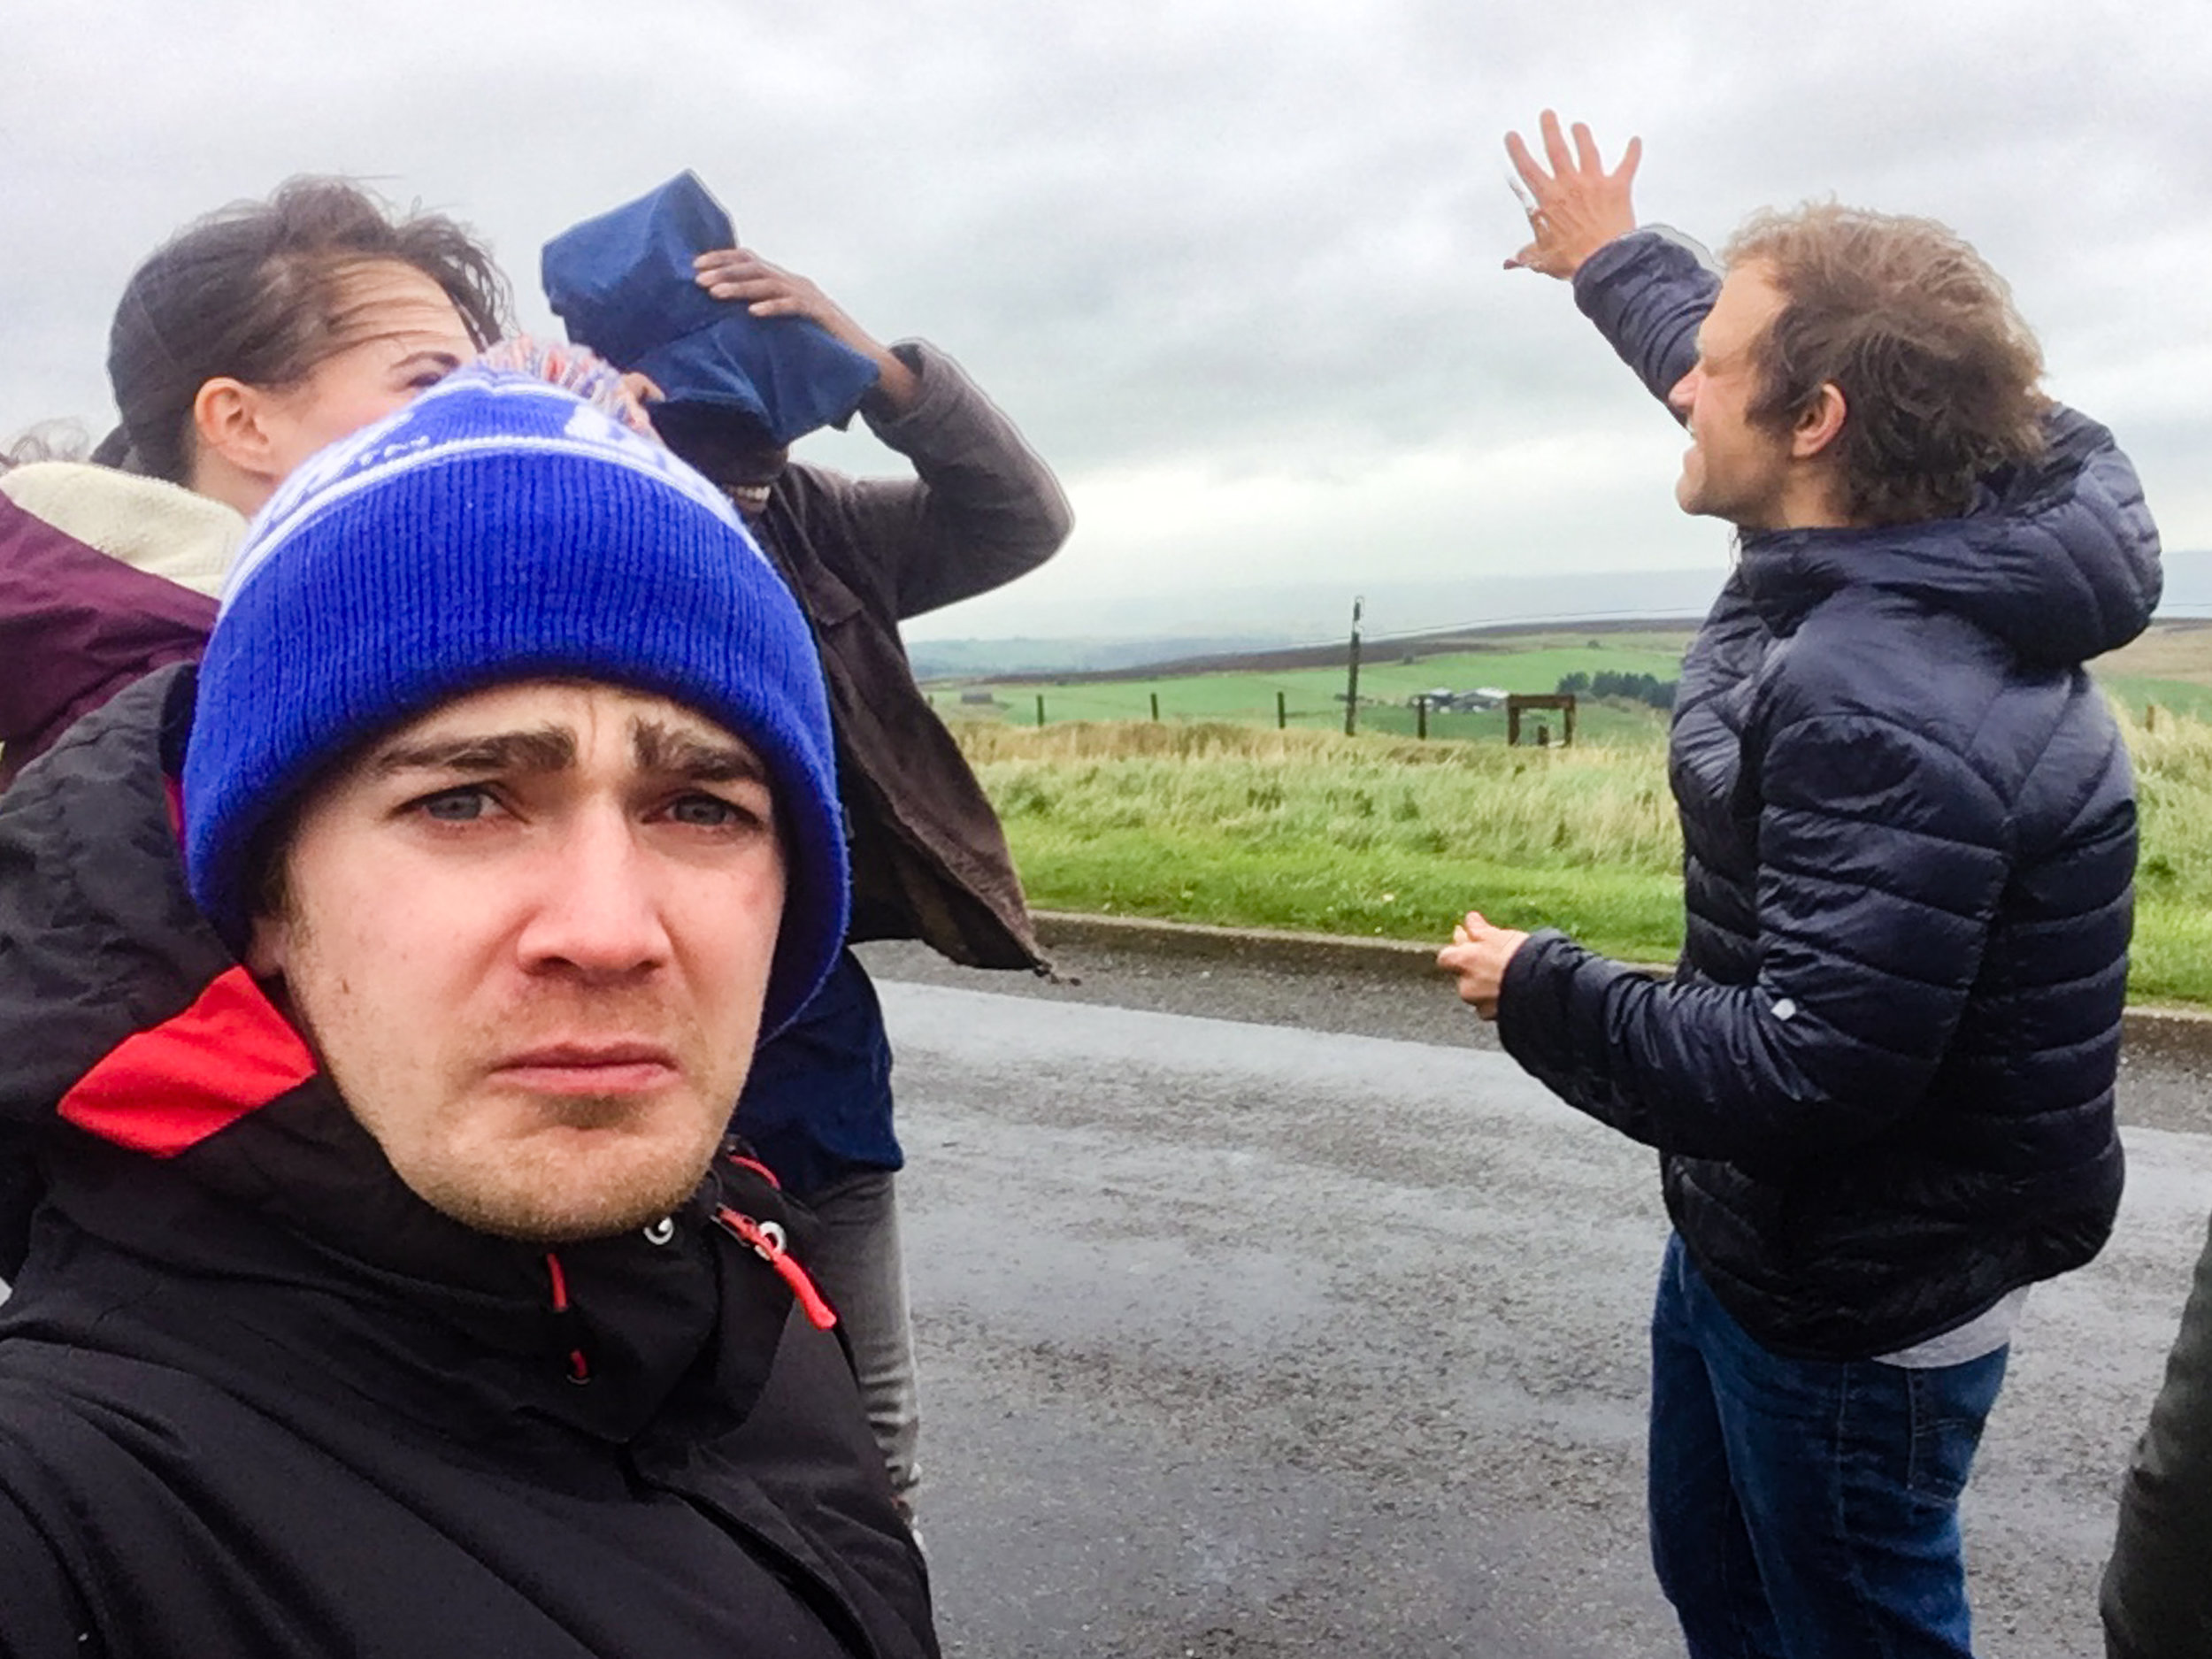 This was Day 4 of filming. All of our epic drone shots went to shit because it was too windy and rainy. We ended up spending the afternoon in a Tea Room whilst Lloyd had a nervous breakdown.